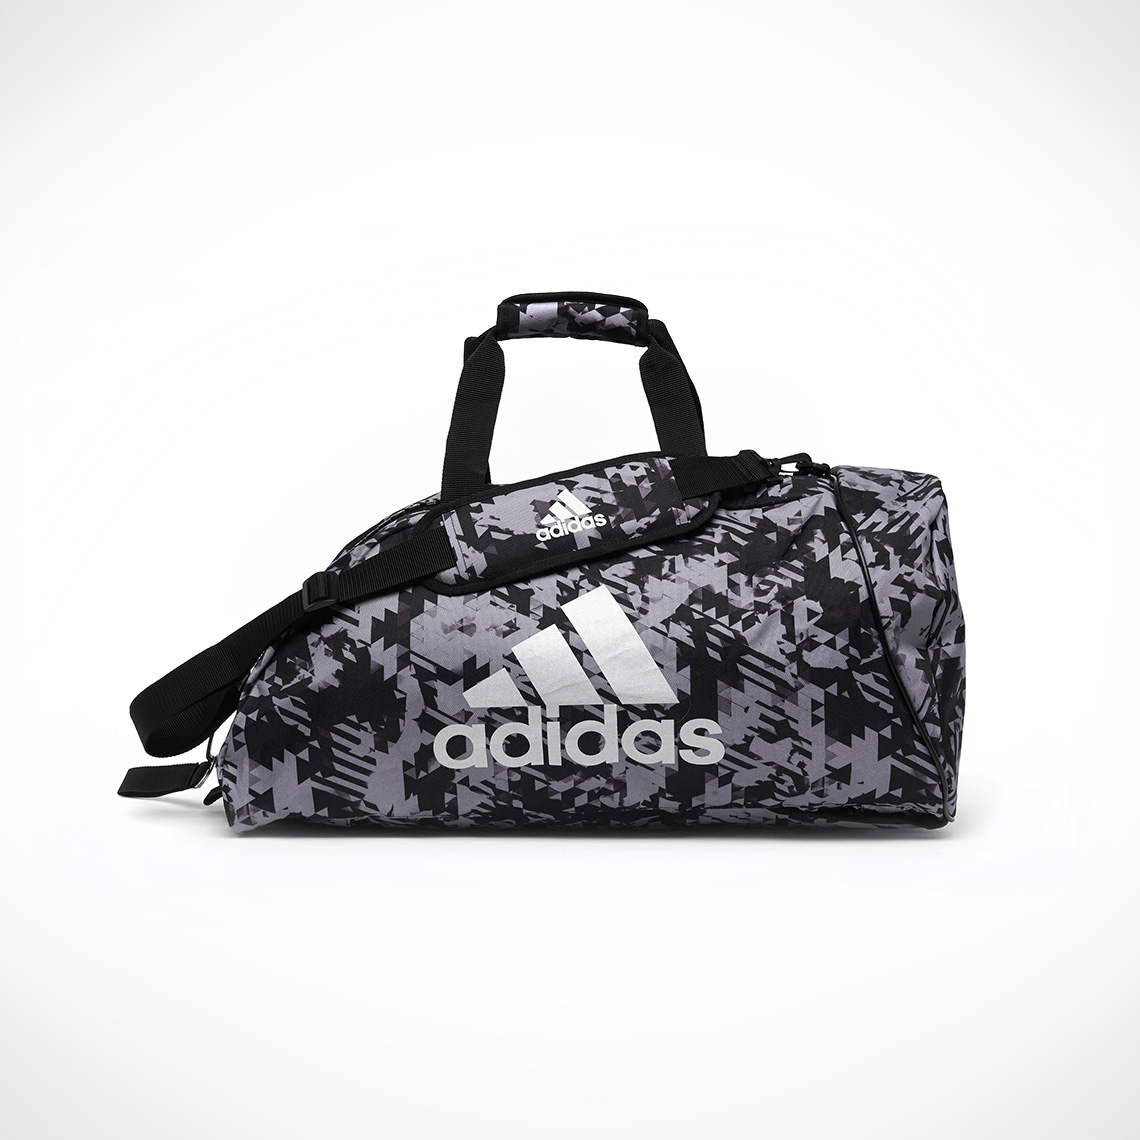 b45ee3fe92 adidas – 2 in 1 Sports Bag – Black Camo/Silver – All For Sports